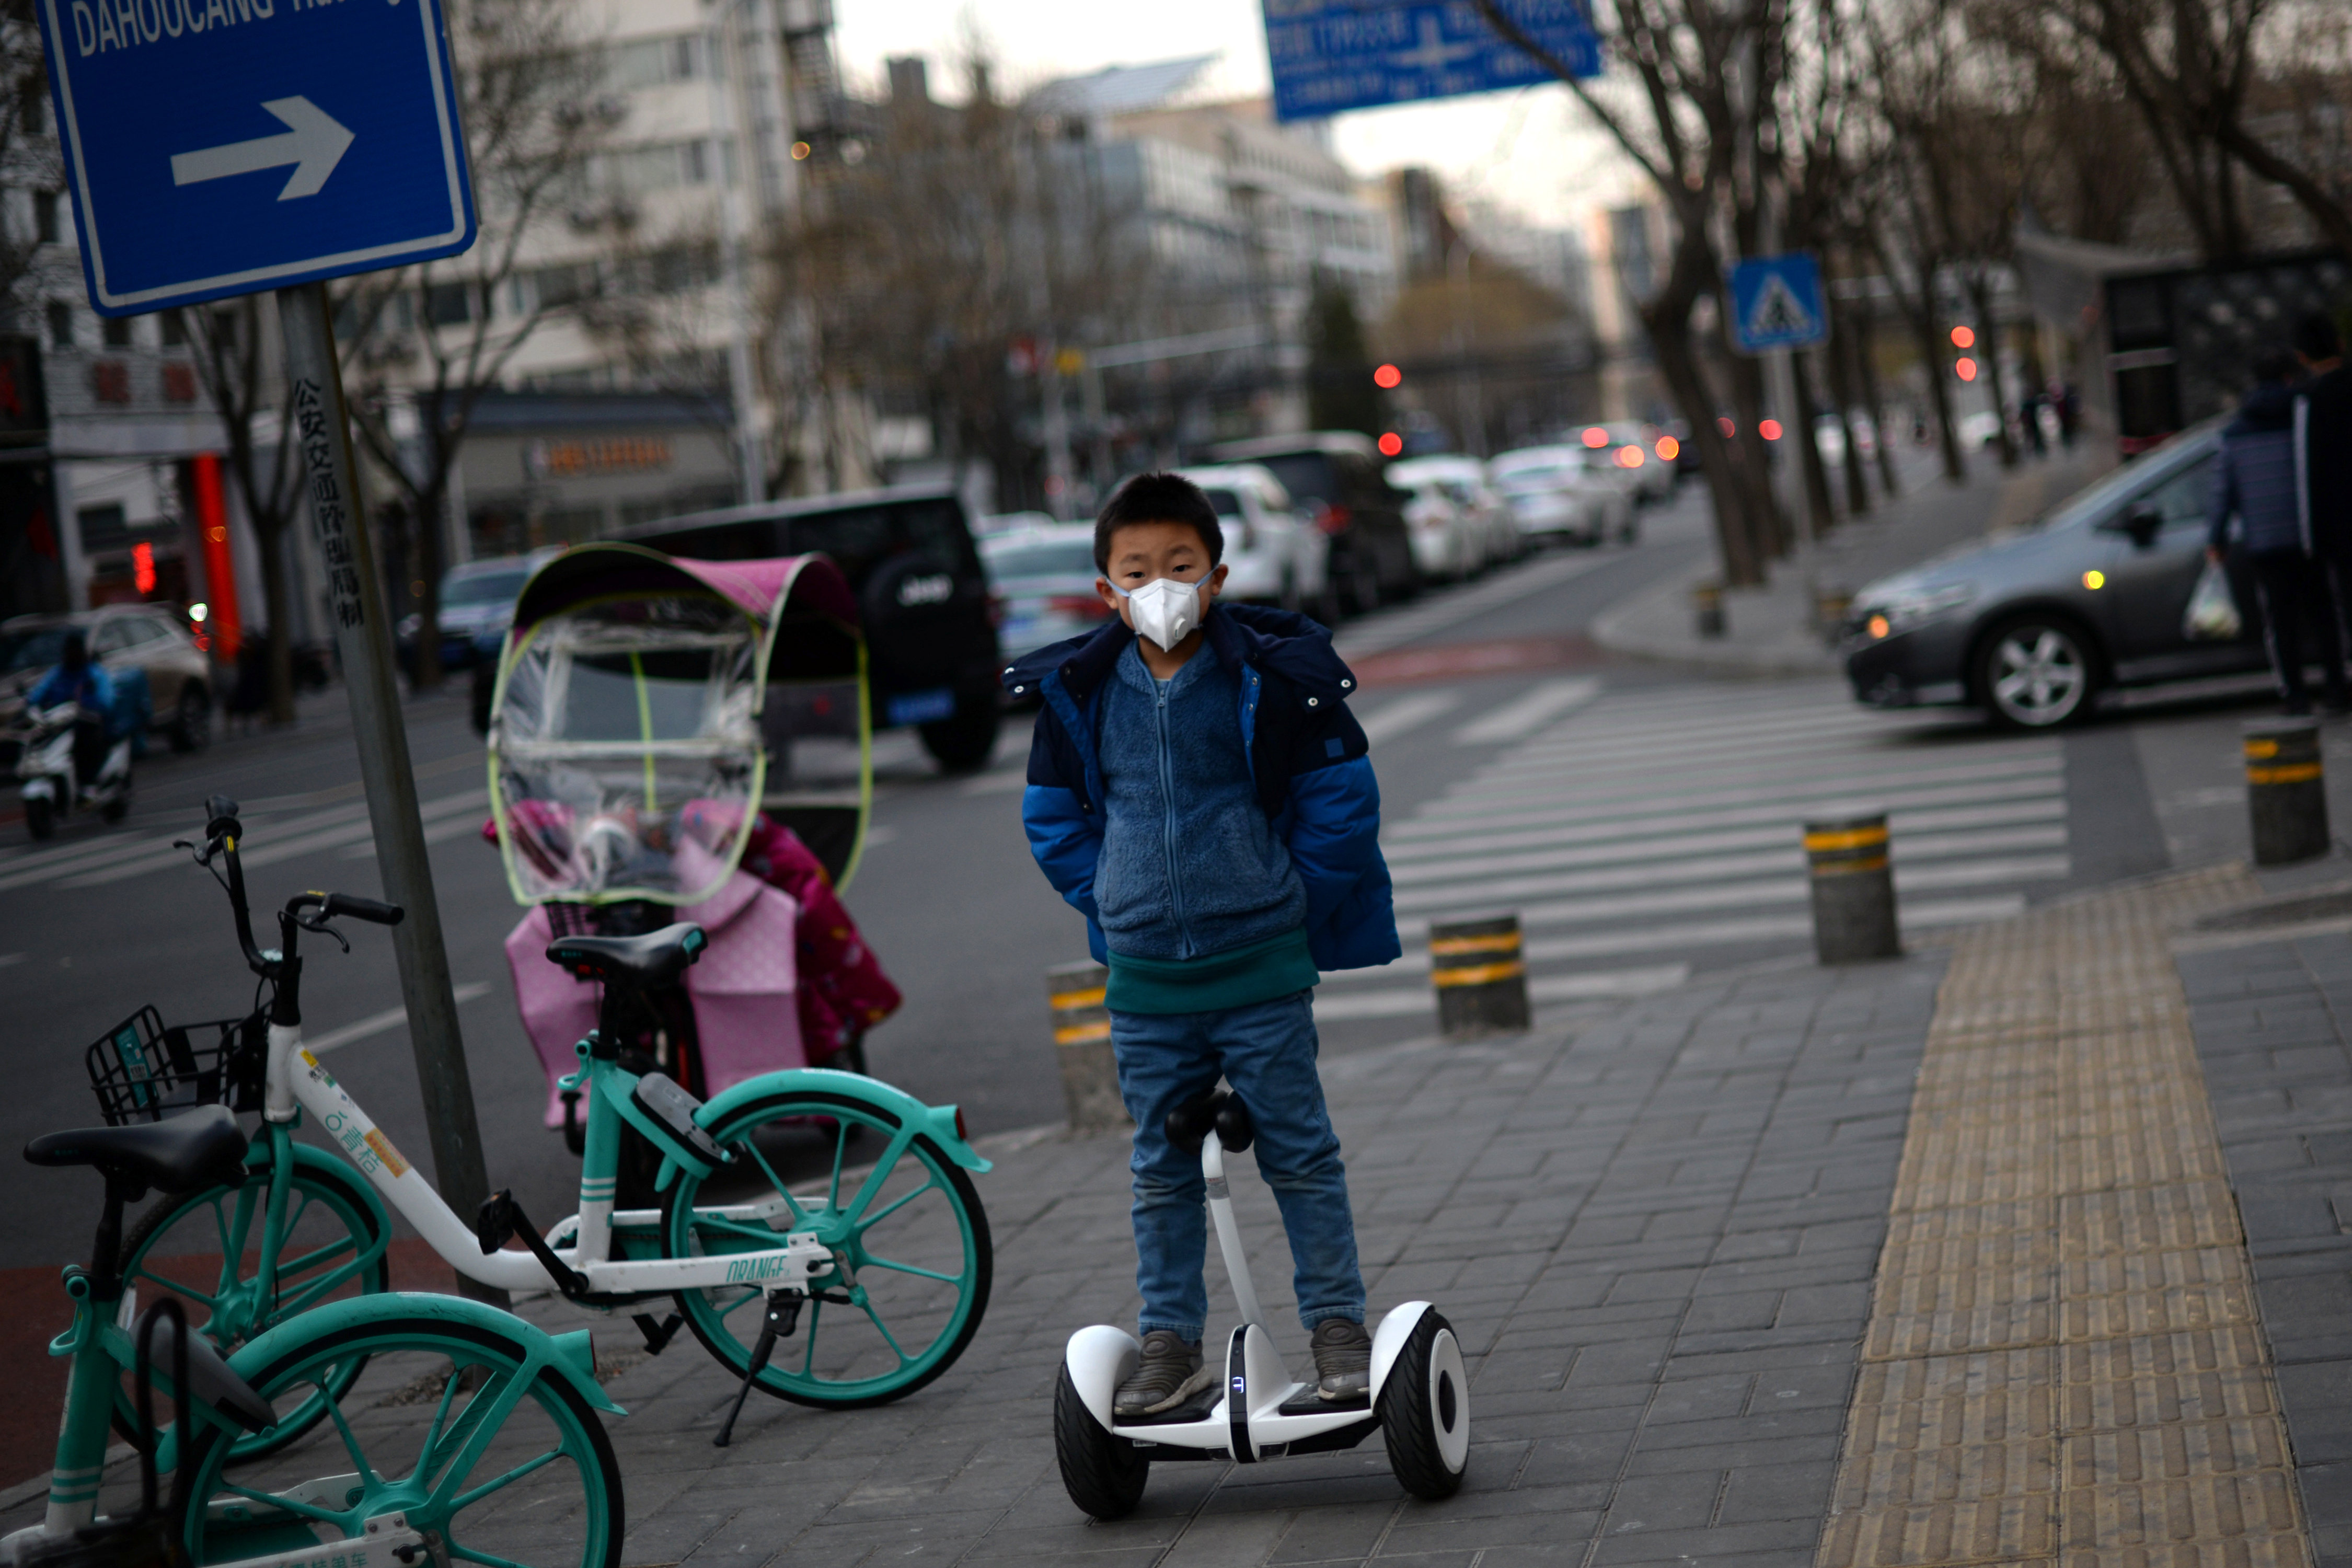 A child wearing a face mask rides a smart self-balancing scooter on a street, as the country is hit by an outbreak of the novel coronavirus, in Beijing, China February 18, 2020. REUTERS/Tingshu Wang - RC203F9P67JO